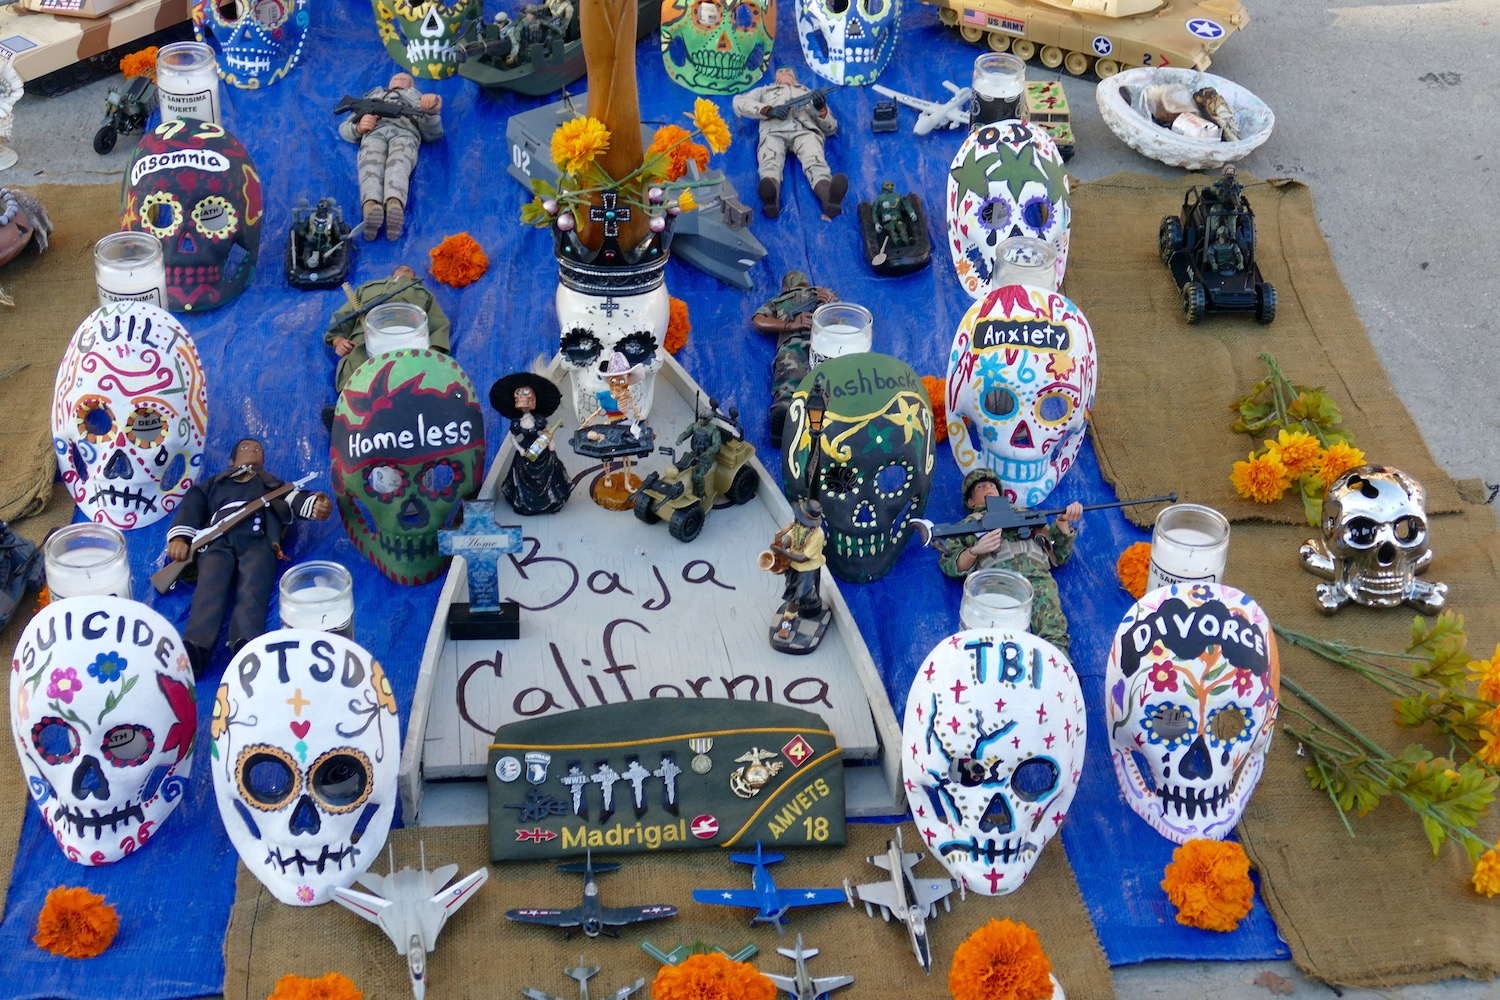 Dia de los muertos altar for Veteran issues - Santa ana 2016